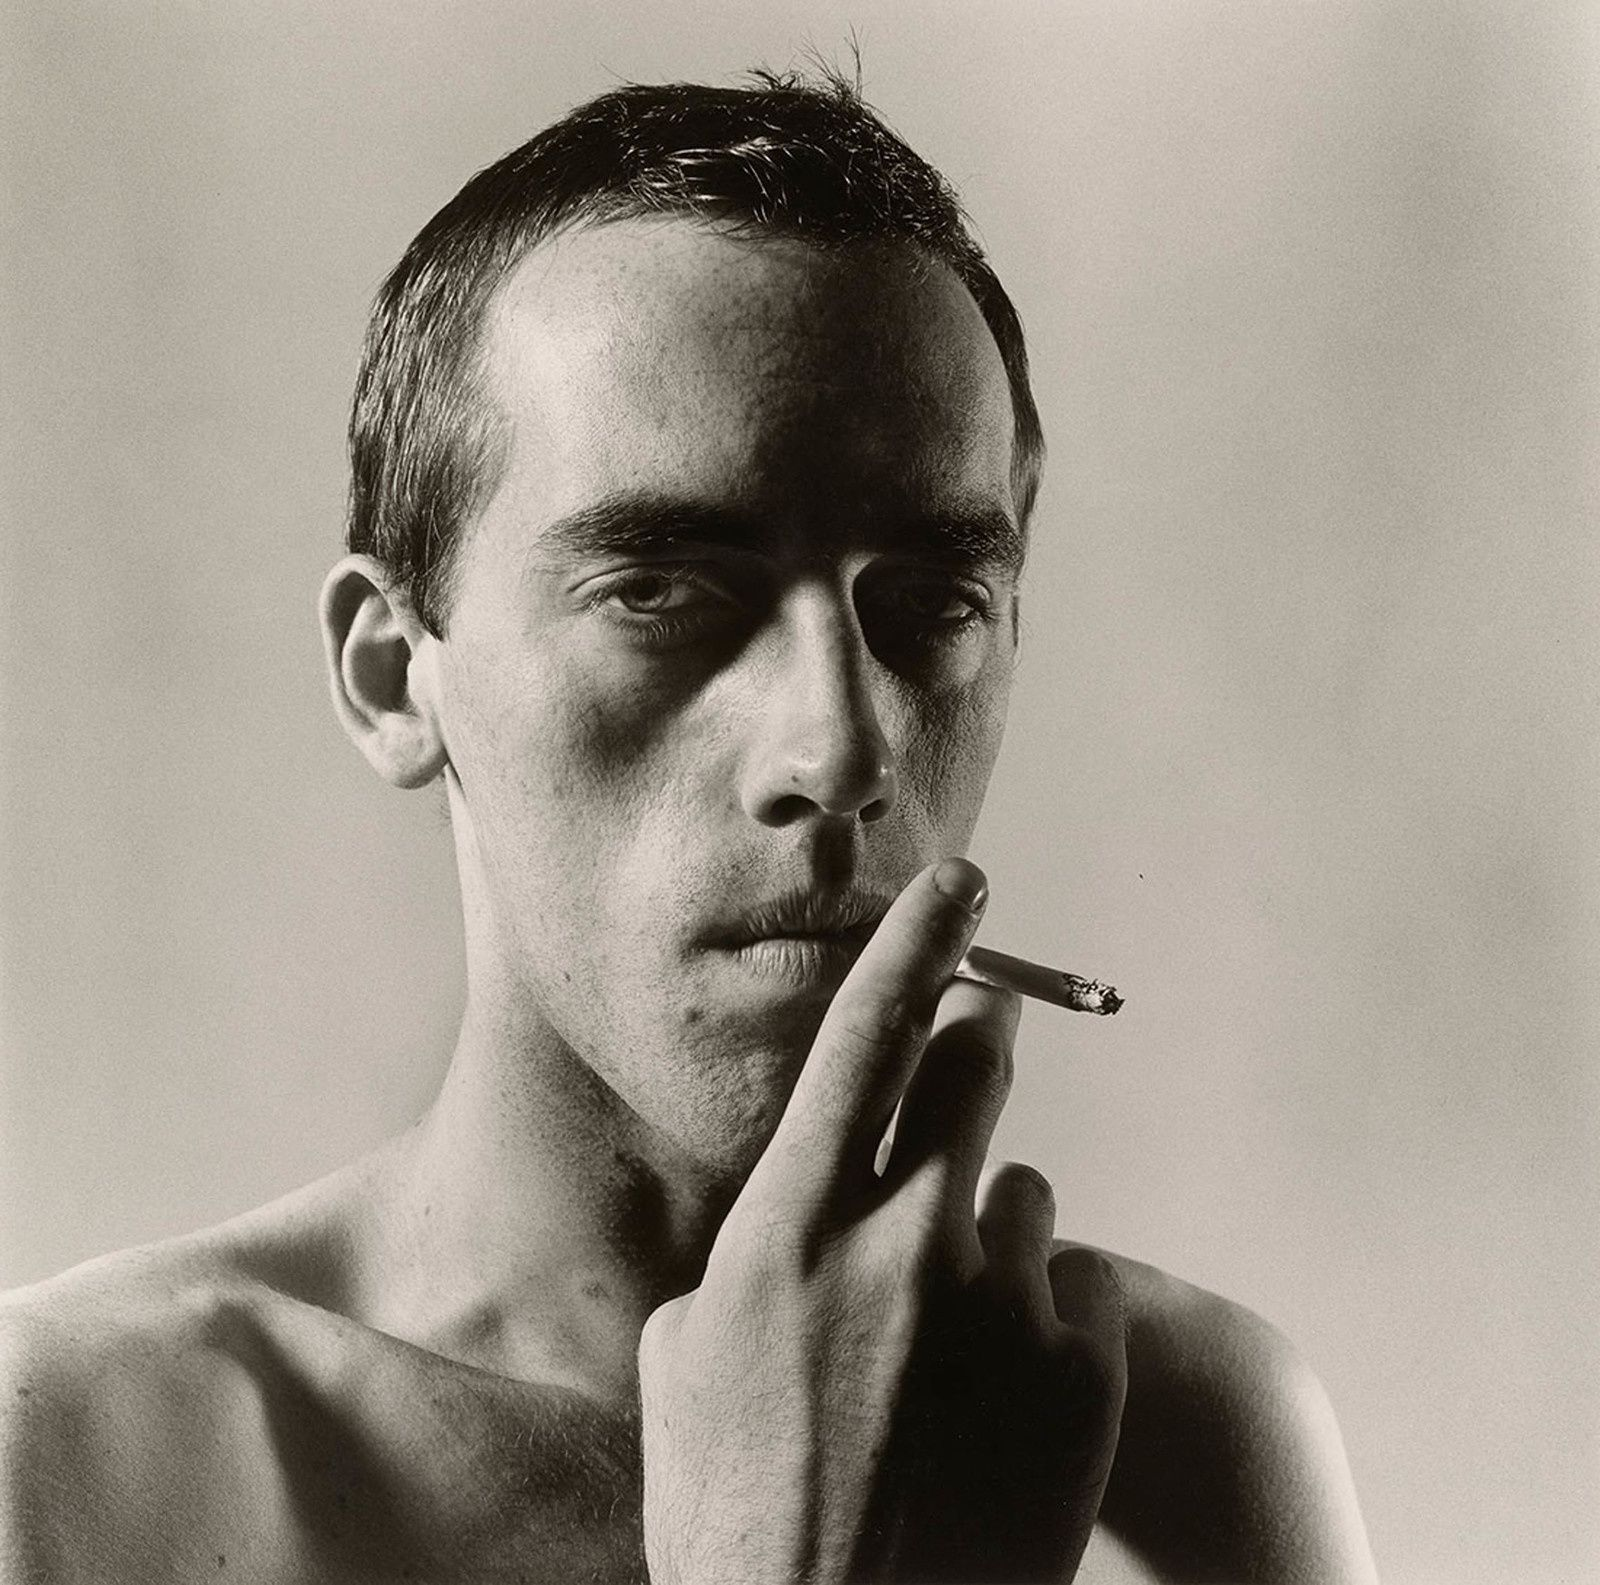 David Wojnarowicz 1981 Peter Hujar Tirage gélatino-argentique, Collection of Ronay and Richard Menschel © Peter Hujar Archive, LLC, courtesy Pace/MacGill Gallery, New York and Fraenkel Gallery, San Francisco